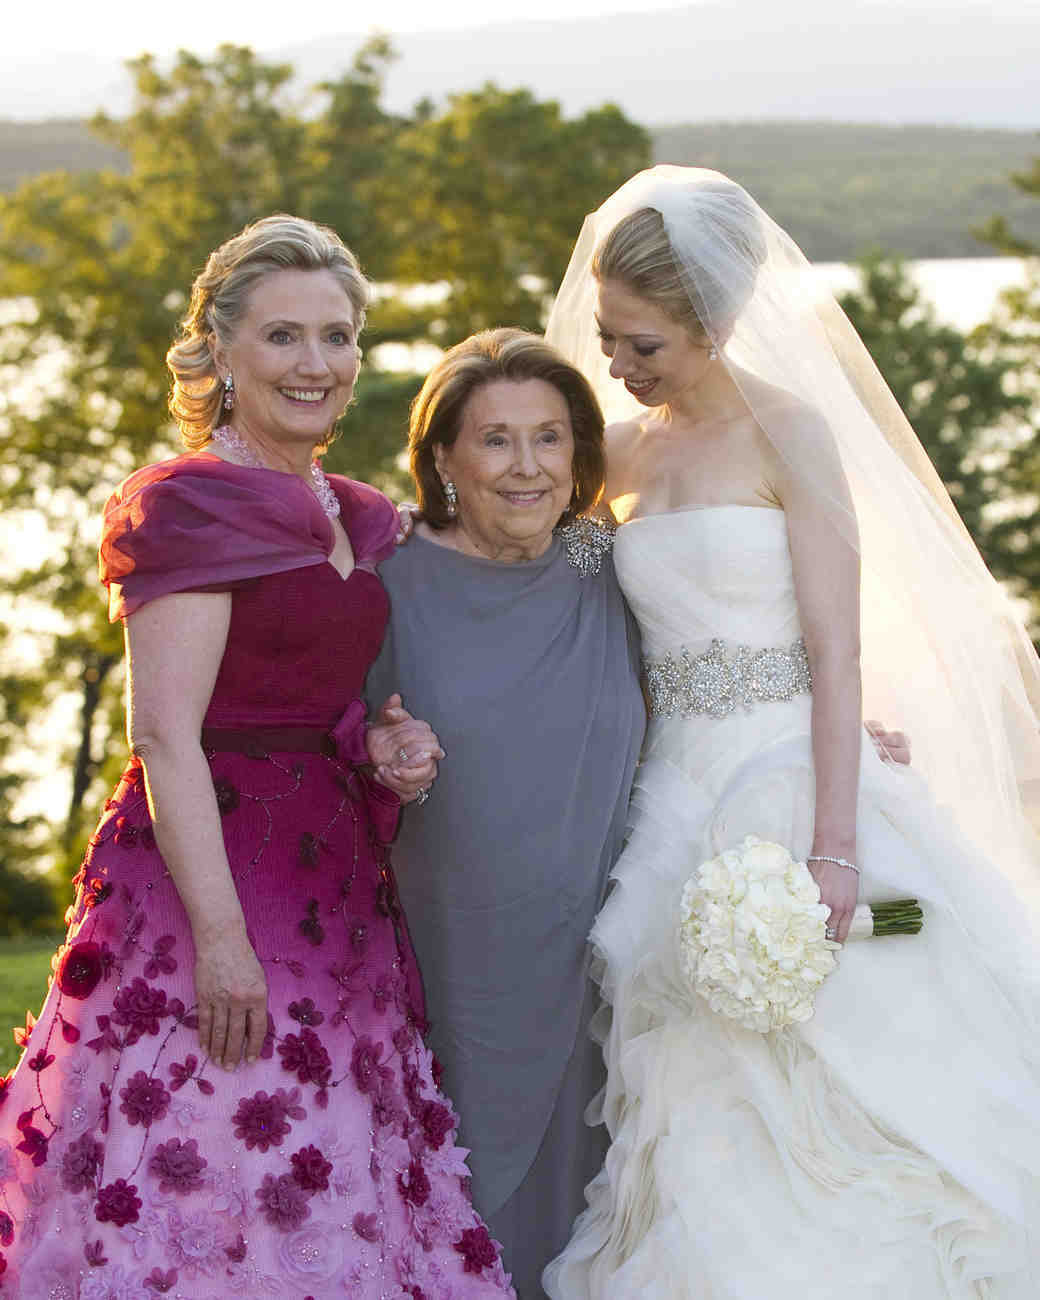 Hilary Clinton as the Mother of the Bride